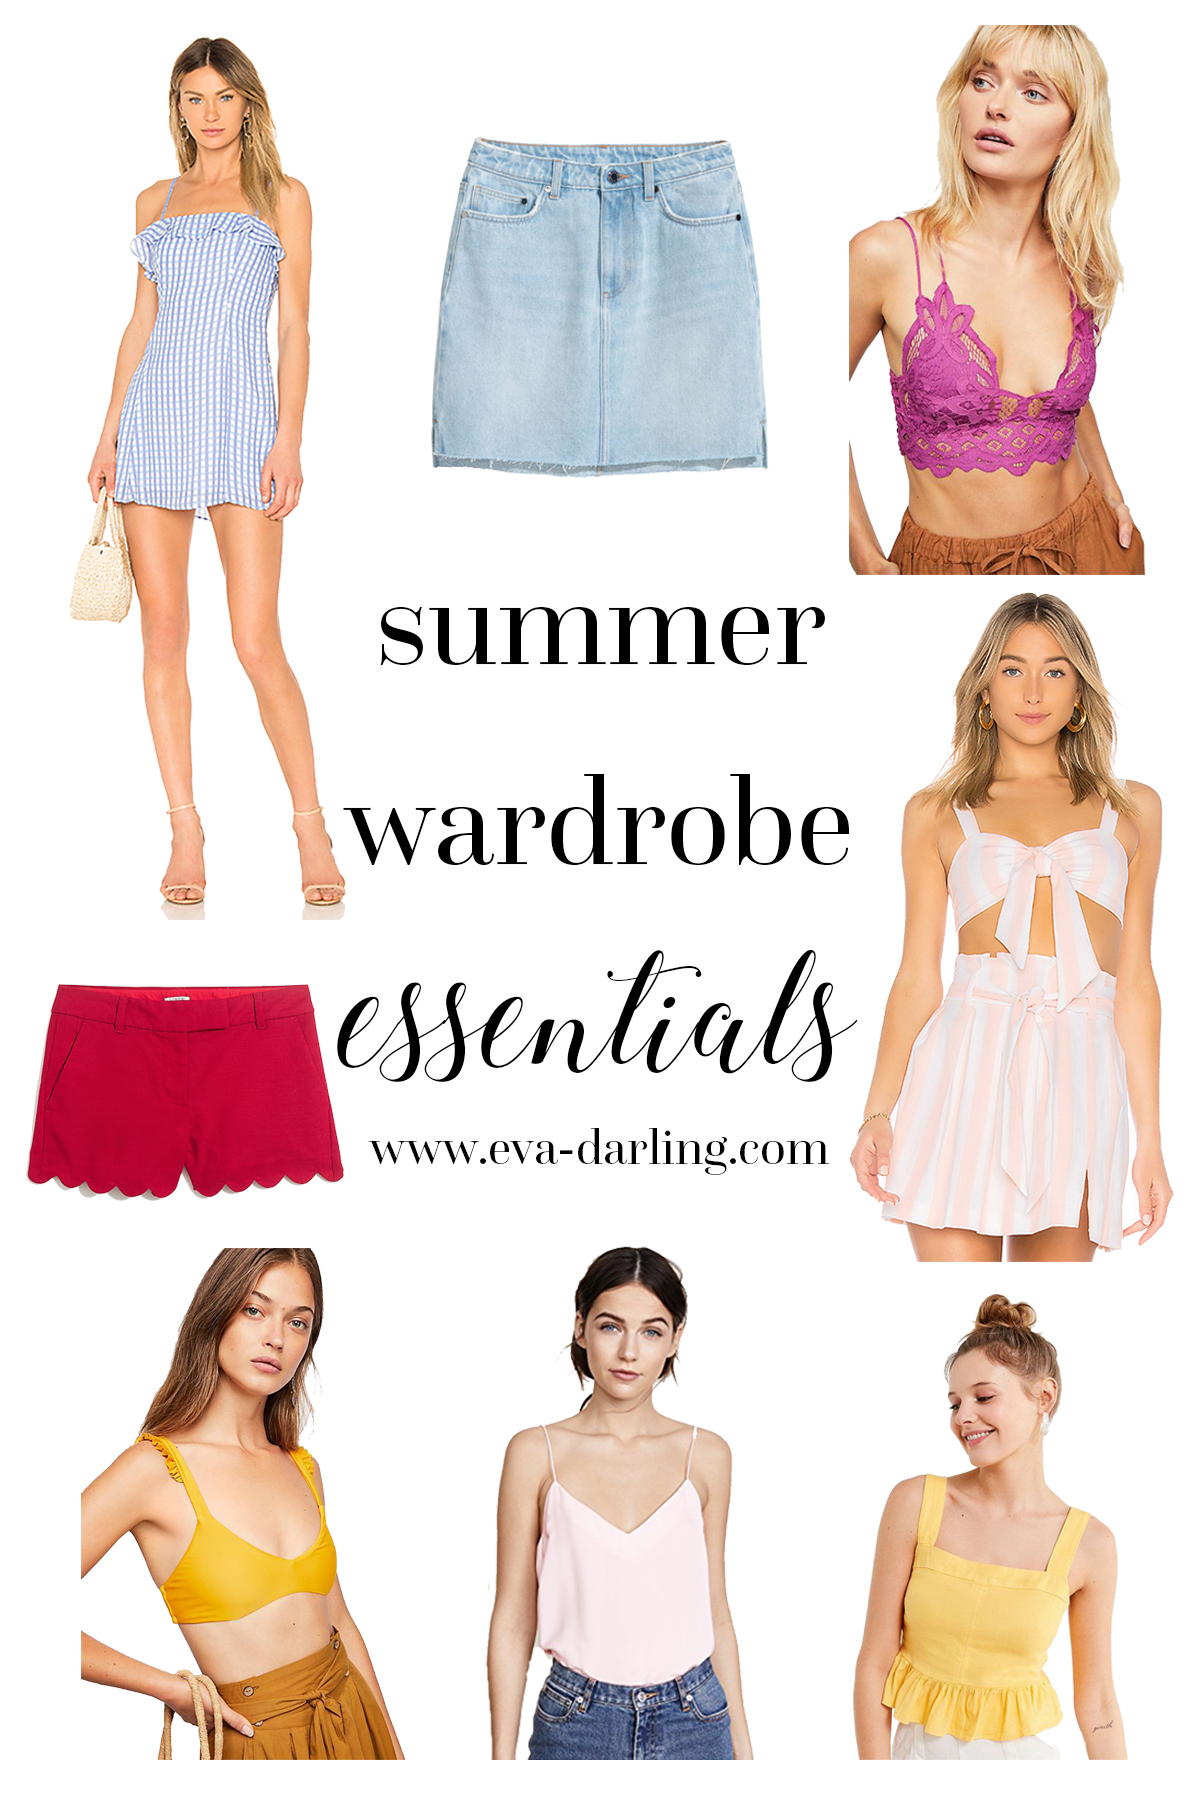 summer wardrobe essentials guide for closet staples in warm weather tropical clothing to wear citizens of humanity hm h and m j crew revolve privacy please amanda uprichard free people urban outfitters denim skirt magenta fuschia bralette pink and white stripe striped matching set yellow crop top bikini silk cami camisole red scallop scalloped shorts4 inch inseam gingham sundress minidress mini dress